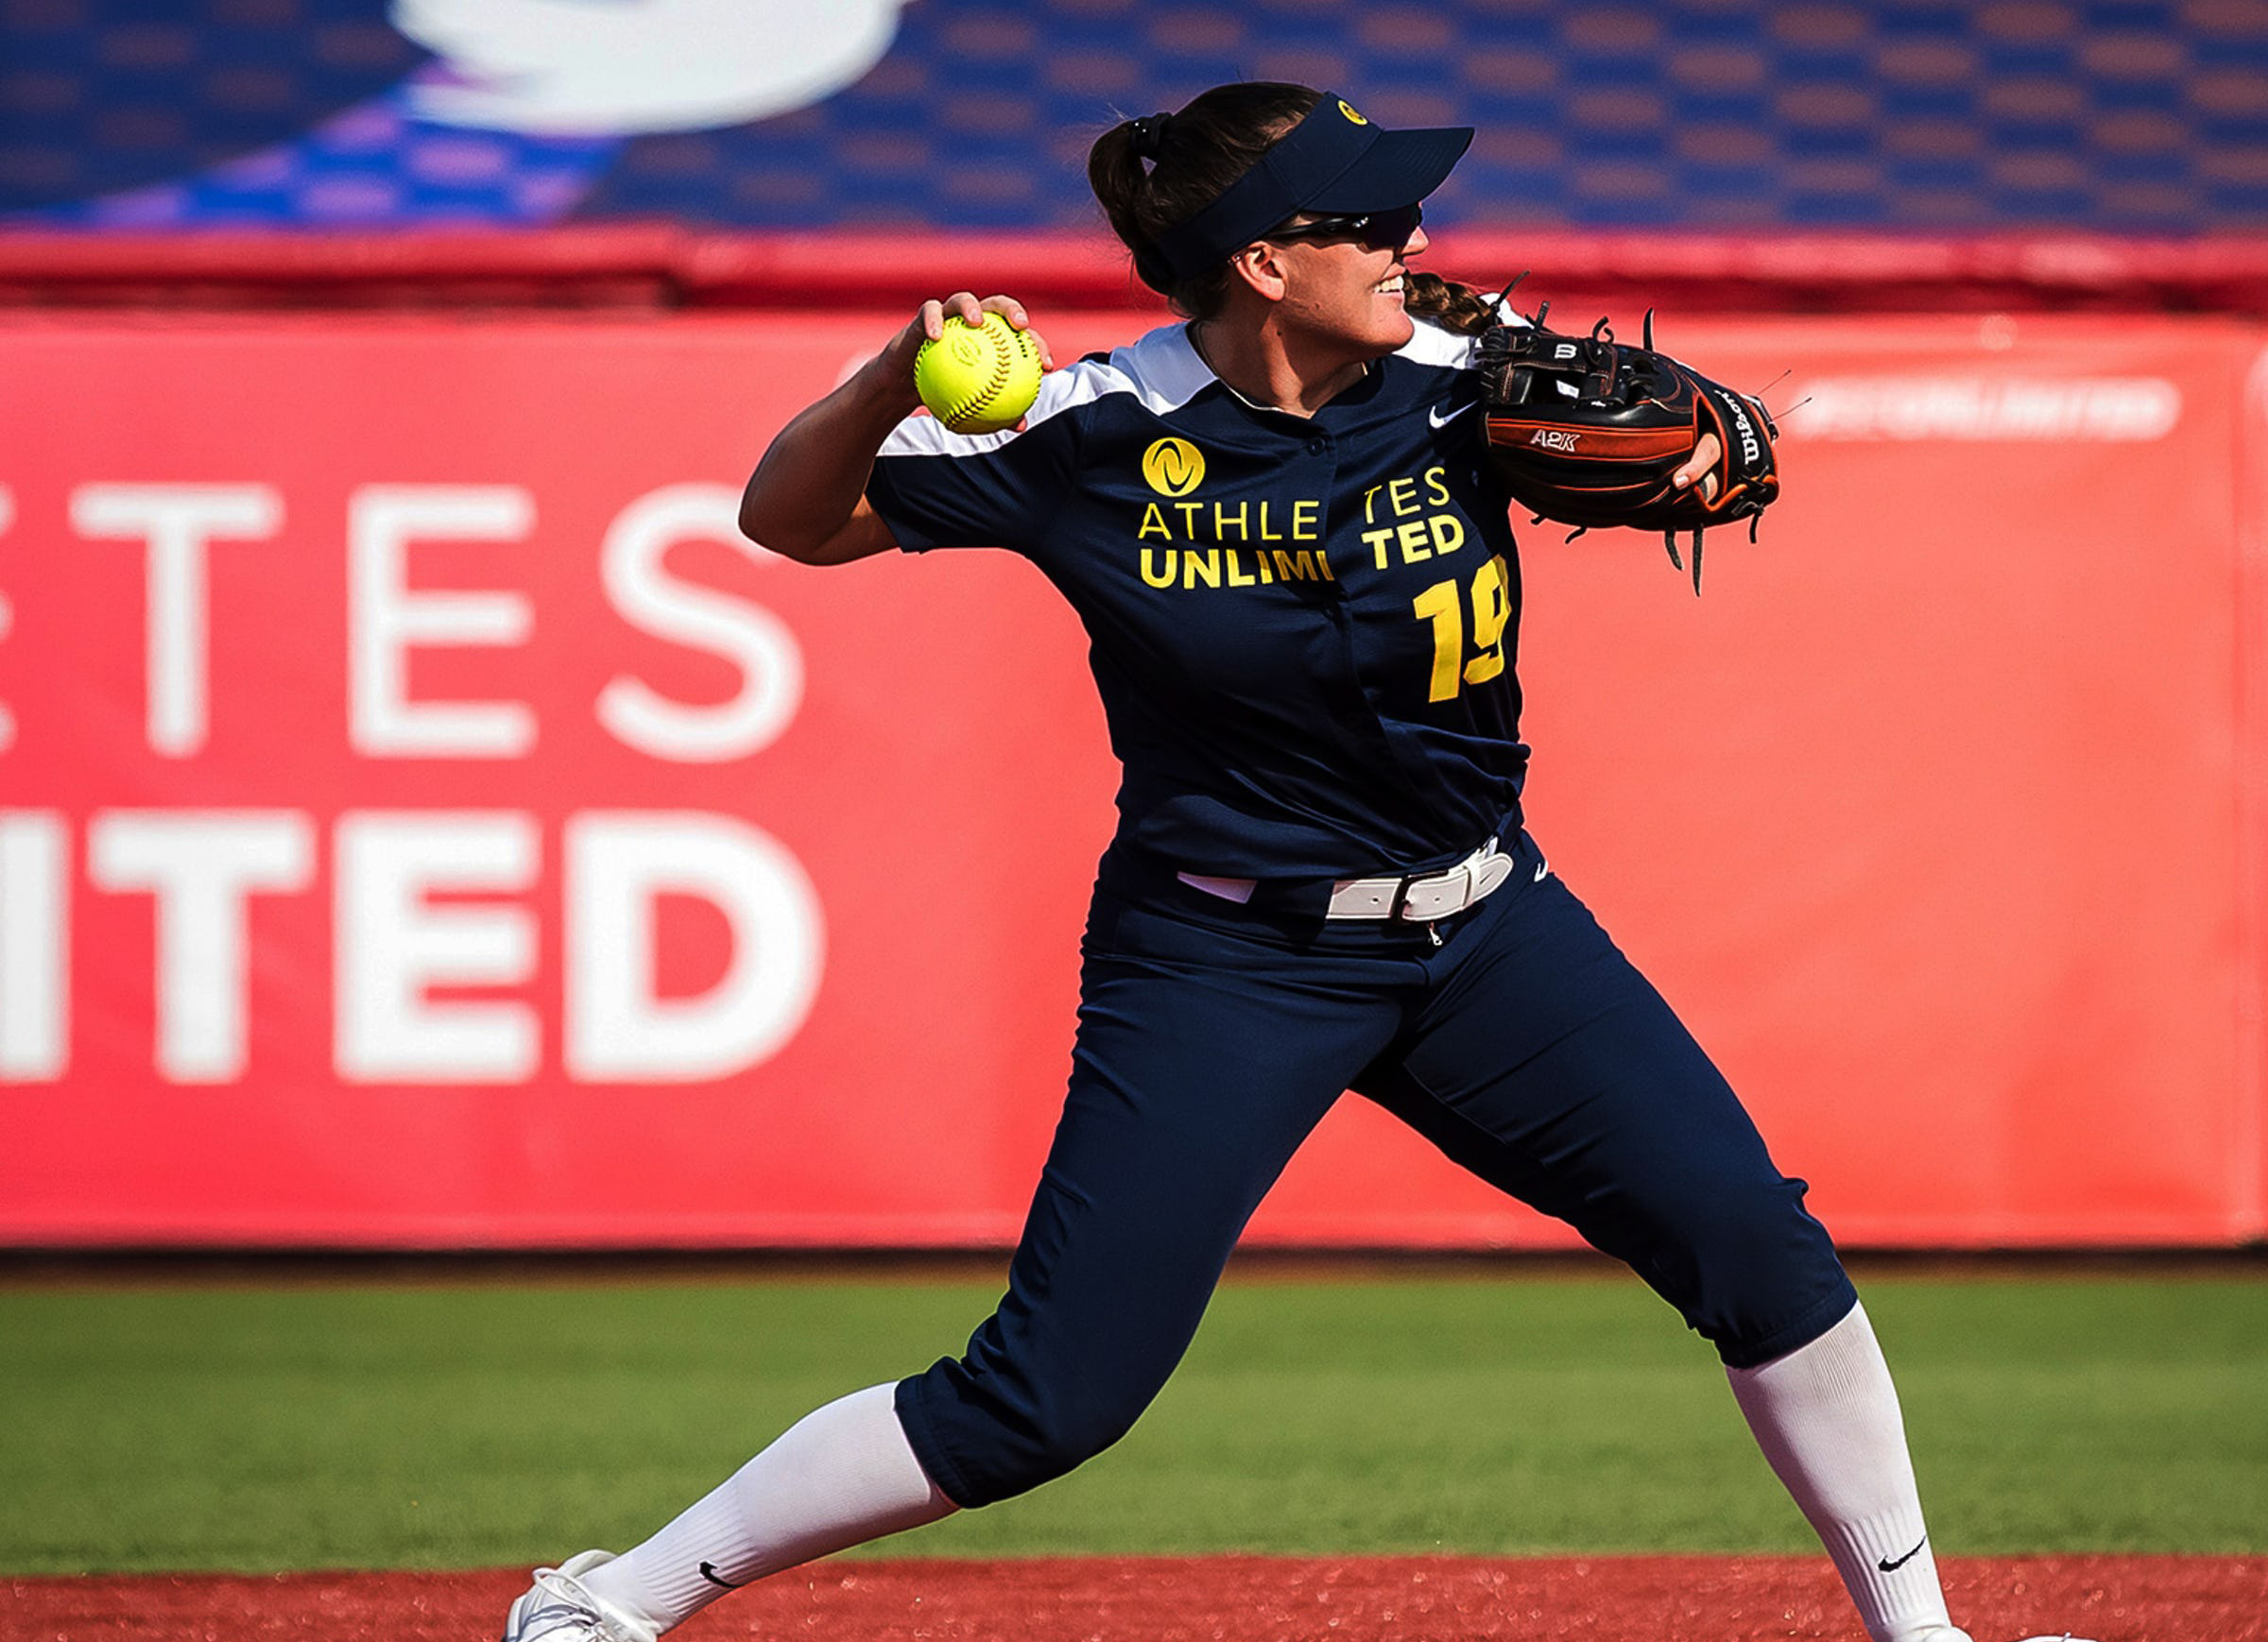 athletes unlimited softball throwing wide